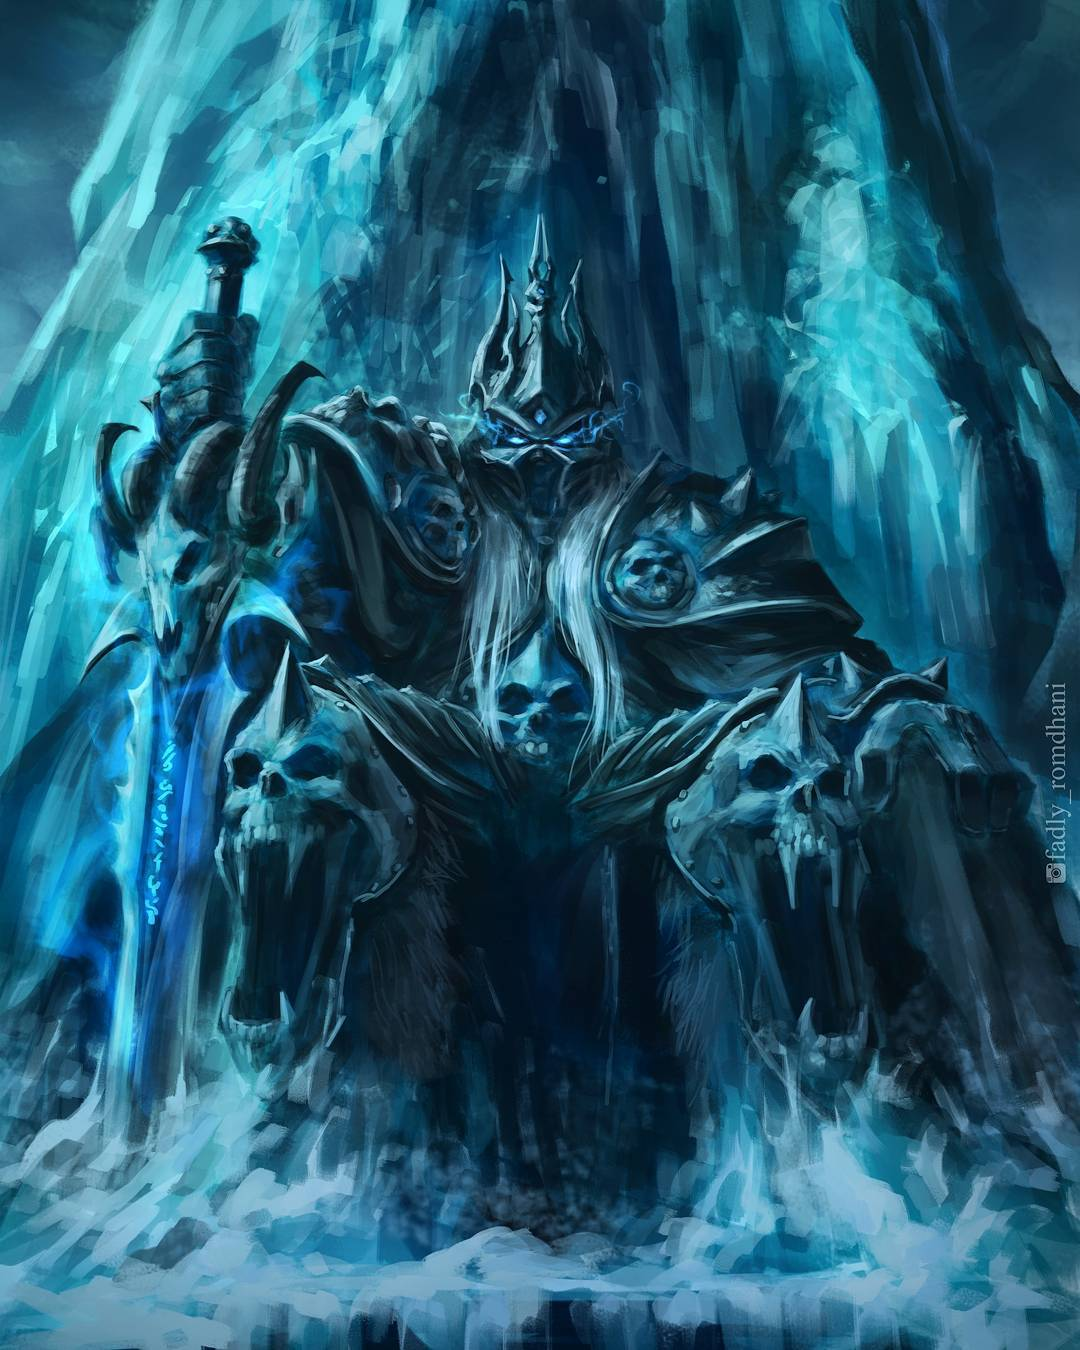 the lich king by fadly romdhani